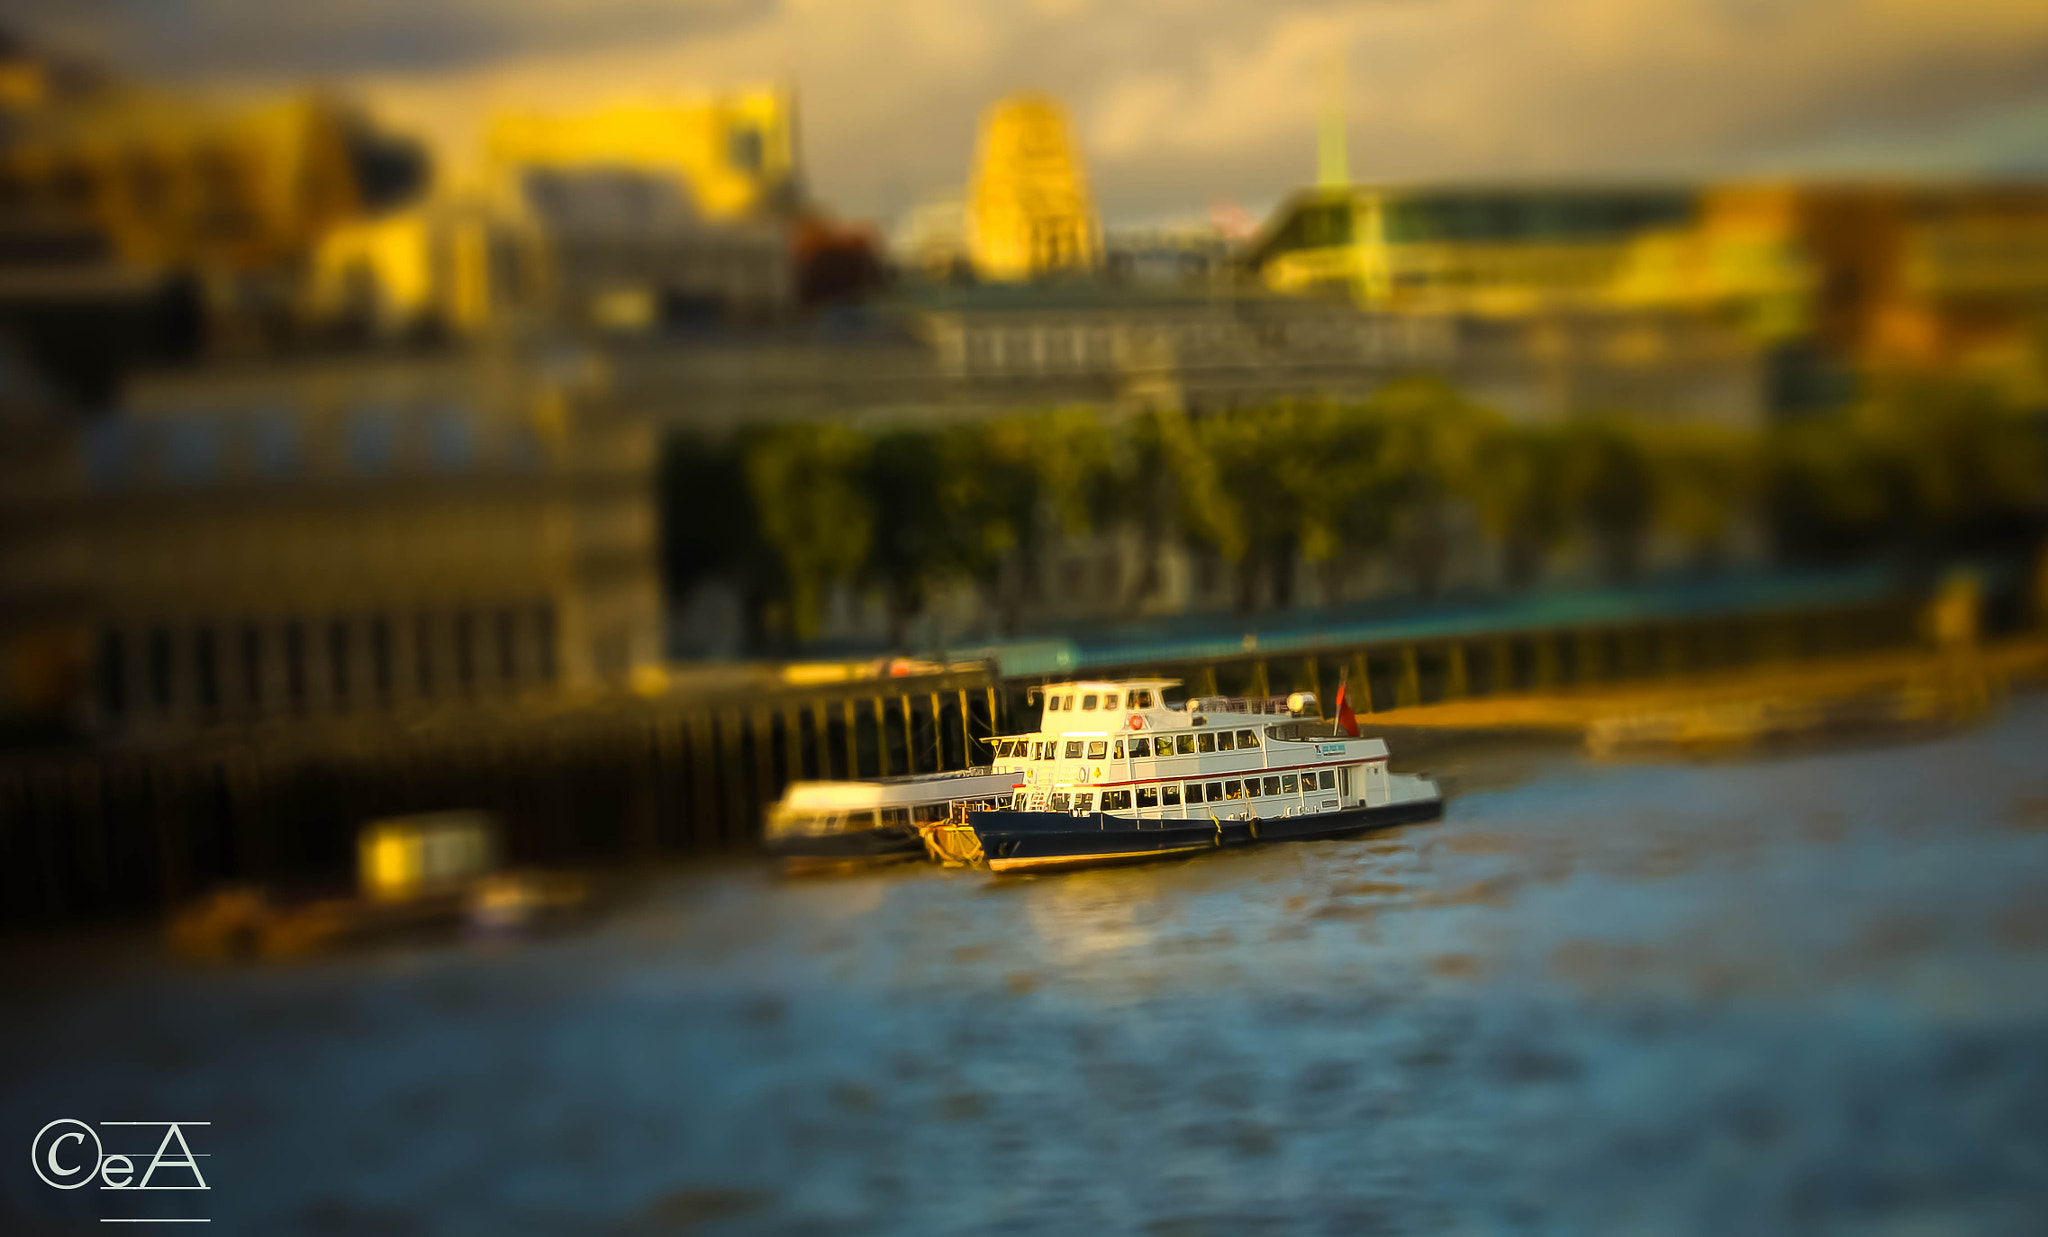 Photograph Toy boat in river thames london by Ershad Ashraf on 500px